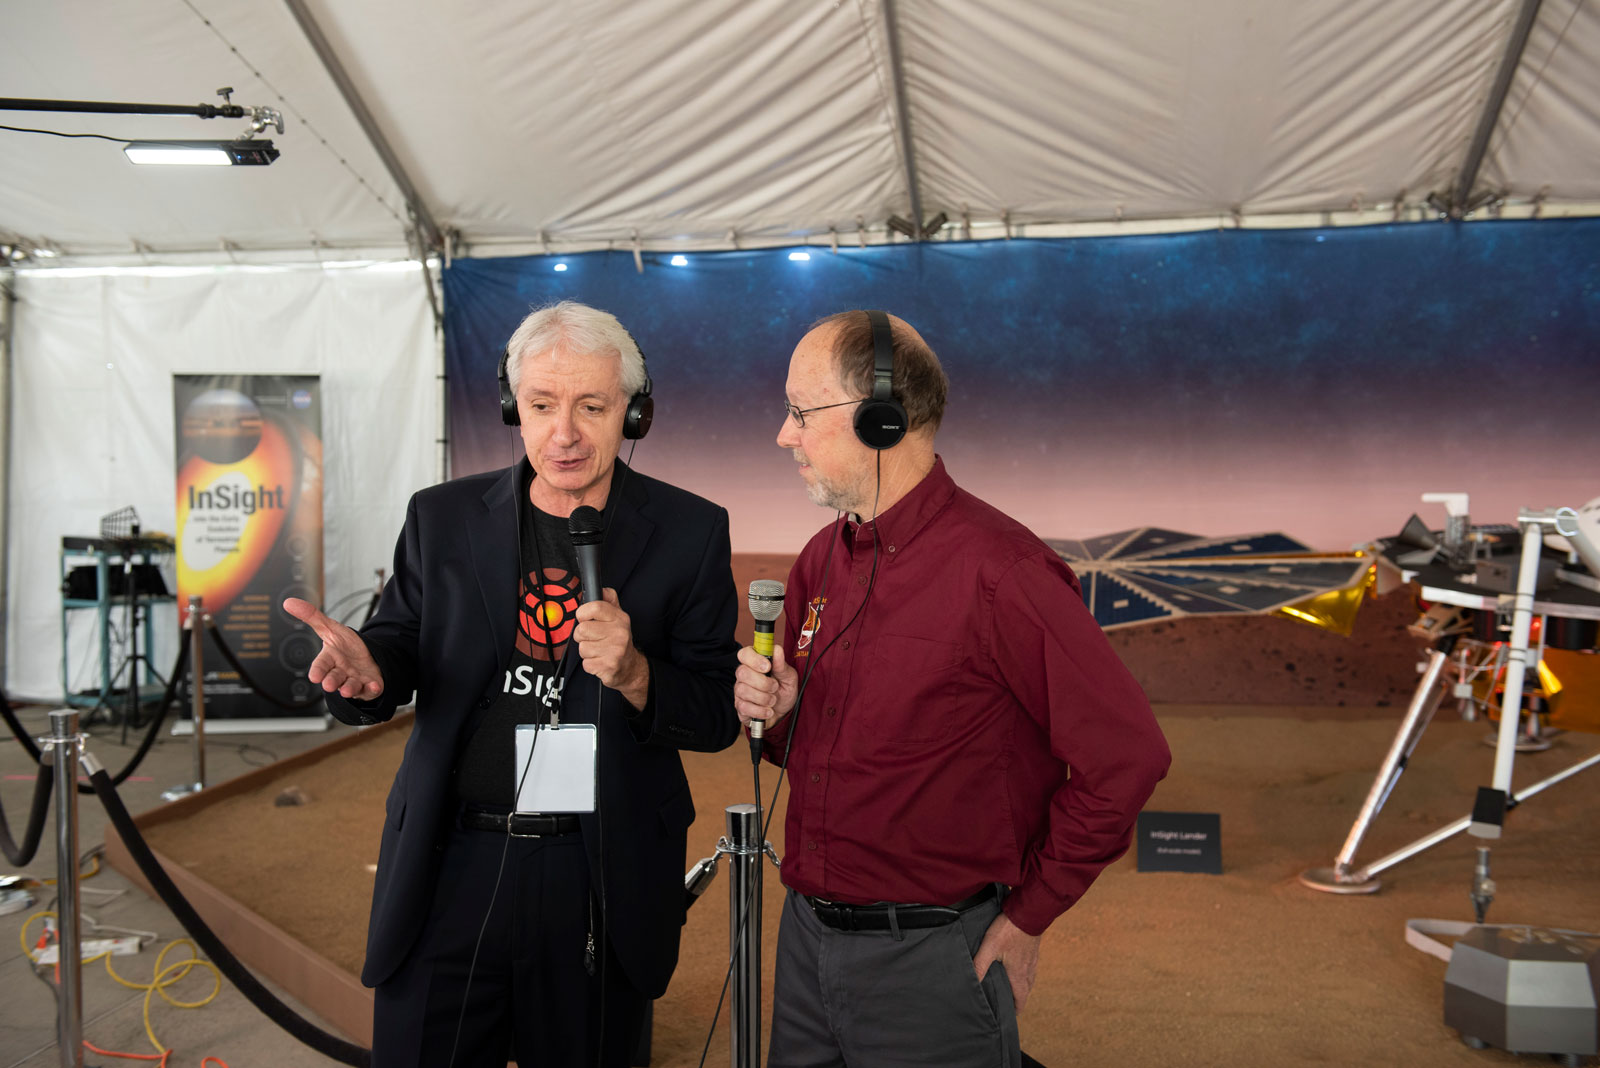 Bruce Banerdt talks to a member of the media on Nov. 26, 2018, in advance of InSight's landing on Mars.